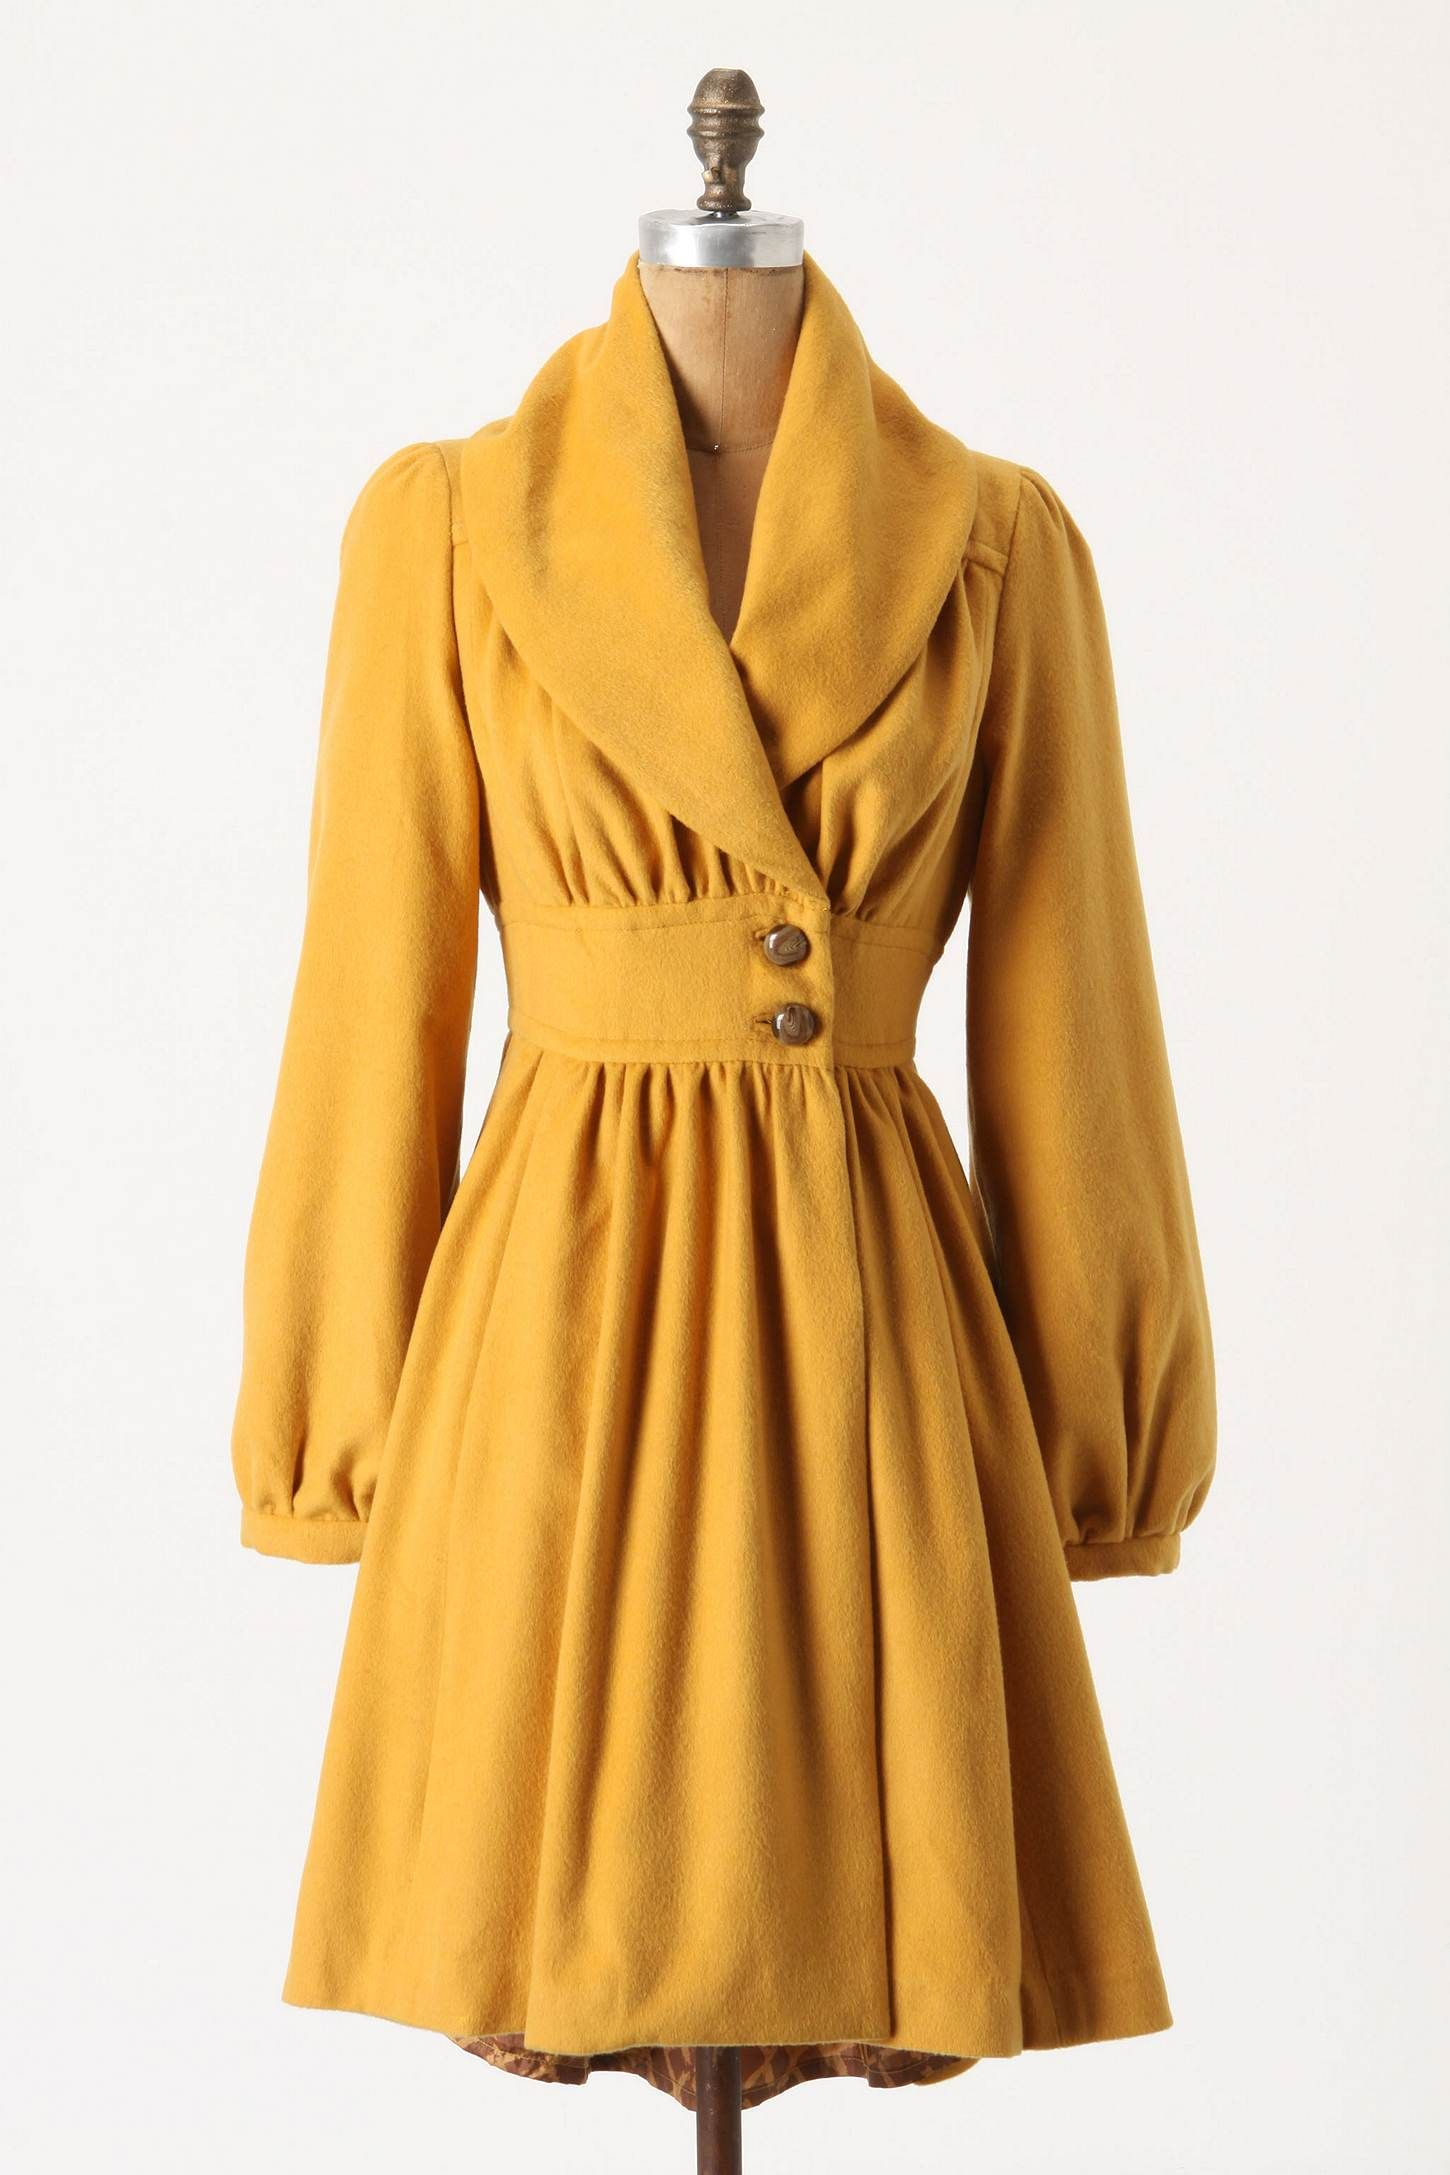 Ruched Marigold Coat | Mustard yellow and Mustard